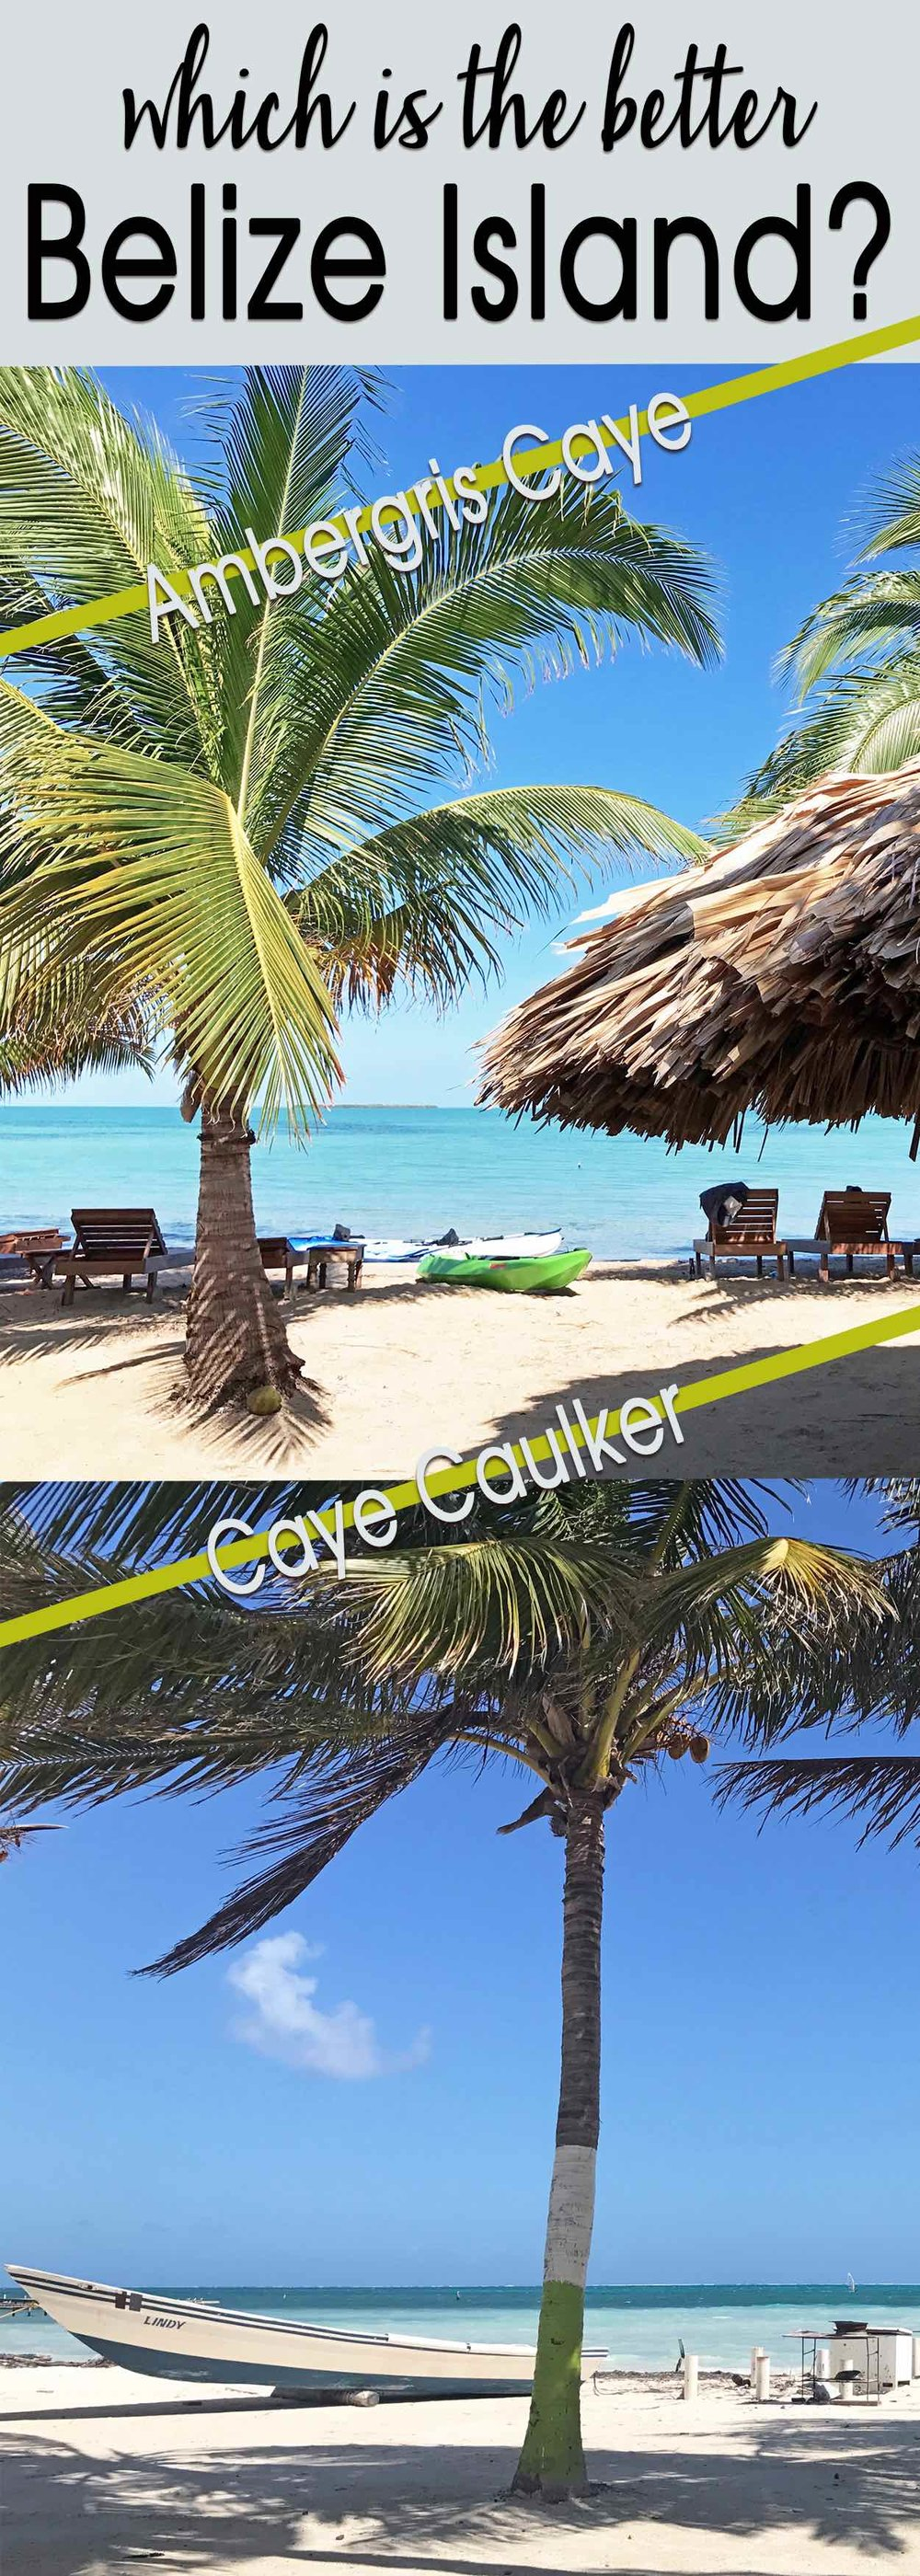 Ambergris Caye vs Caulker Caulker | Which Belize island is better?